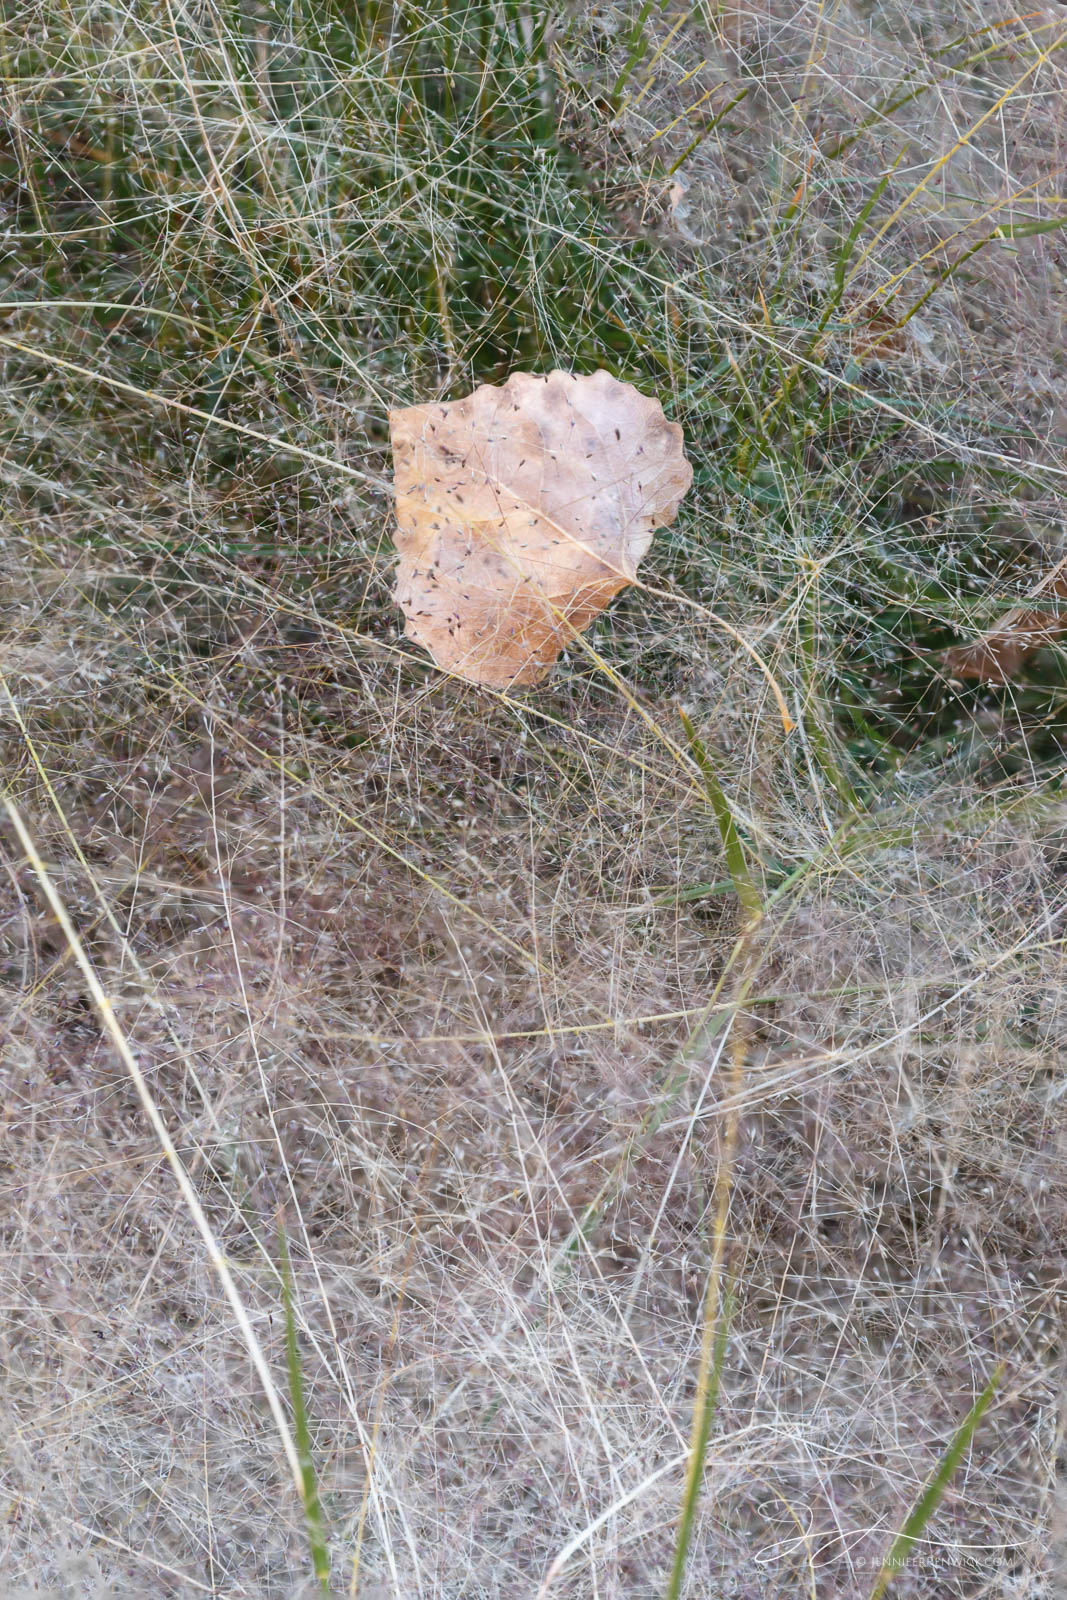 A cottonwood leaf comes to rest on a bed of grasses.